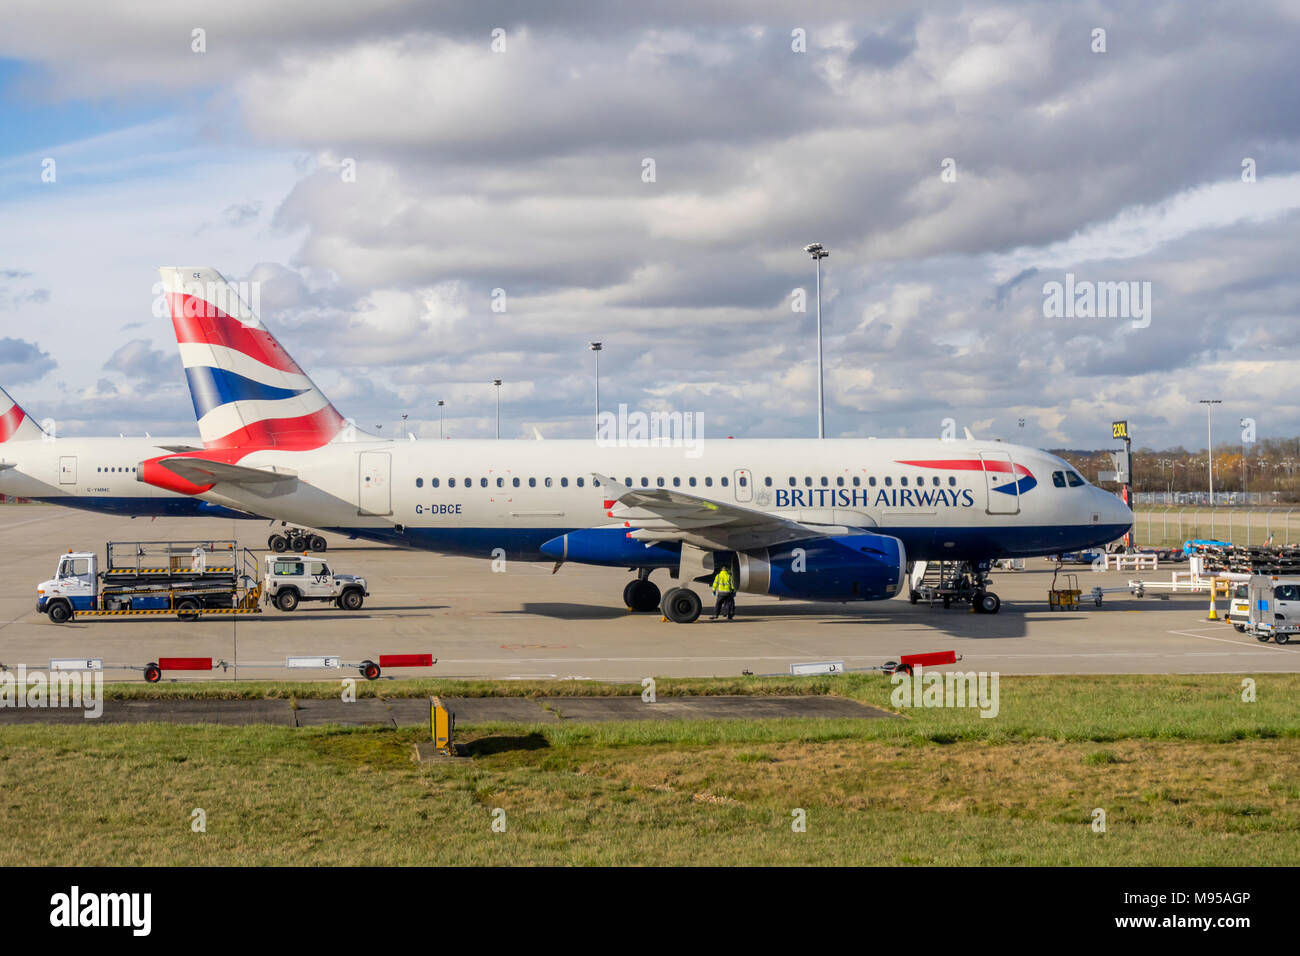 A stationary British Airways airplane of the Airbus A319 type  parked at London Gatwick Airport in 2018, England, UK - Stock Image